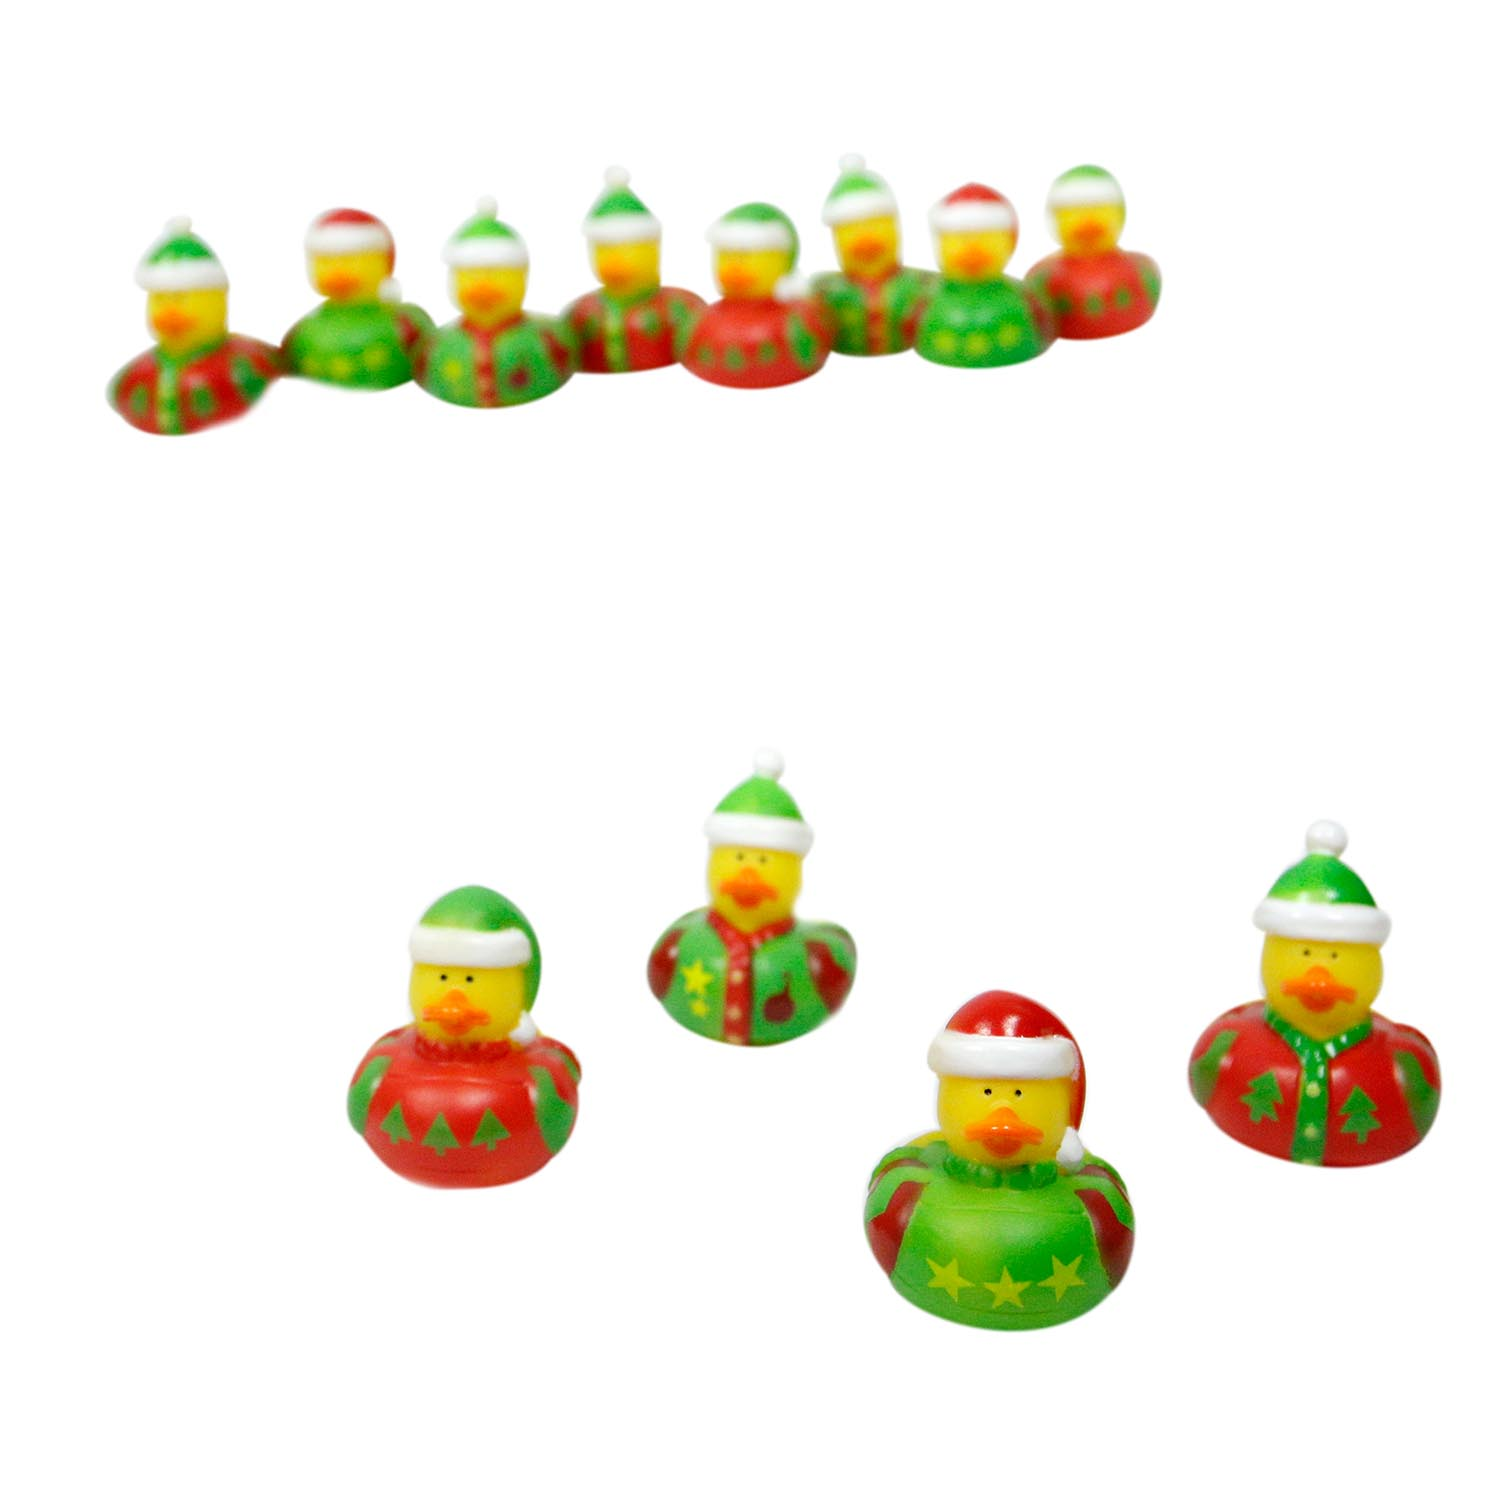 Ugly Sweater Rubber Ducks